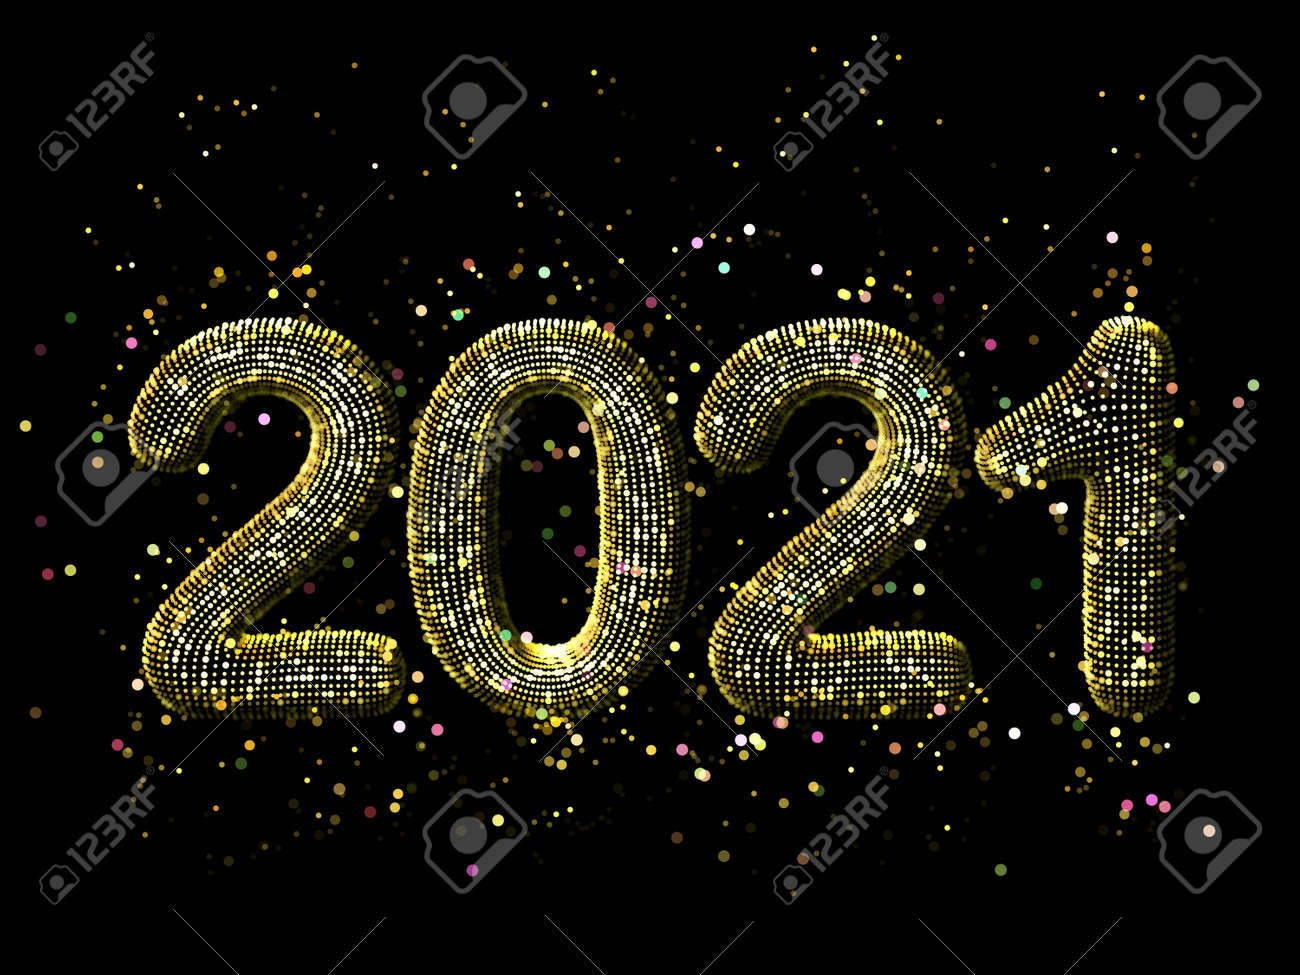 Happy New Year greeting glamorous postcard: 3D golden glittering text 2021 with shiny sparkles on black background. Concept of 2021 New Year celebration. New Year festive vector illustration. - 157402442